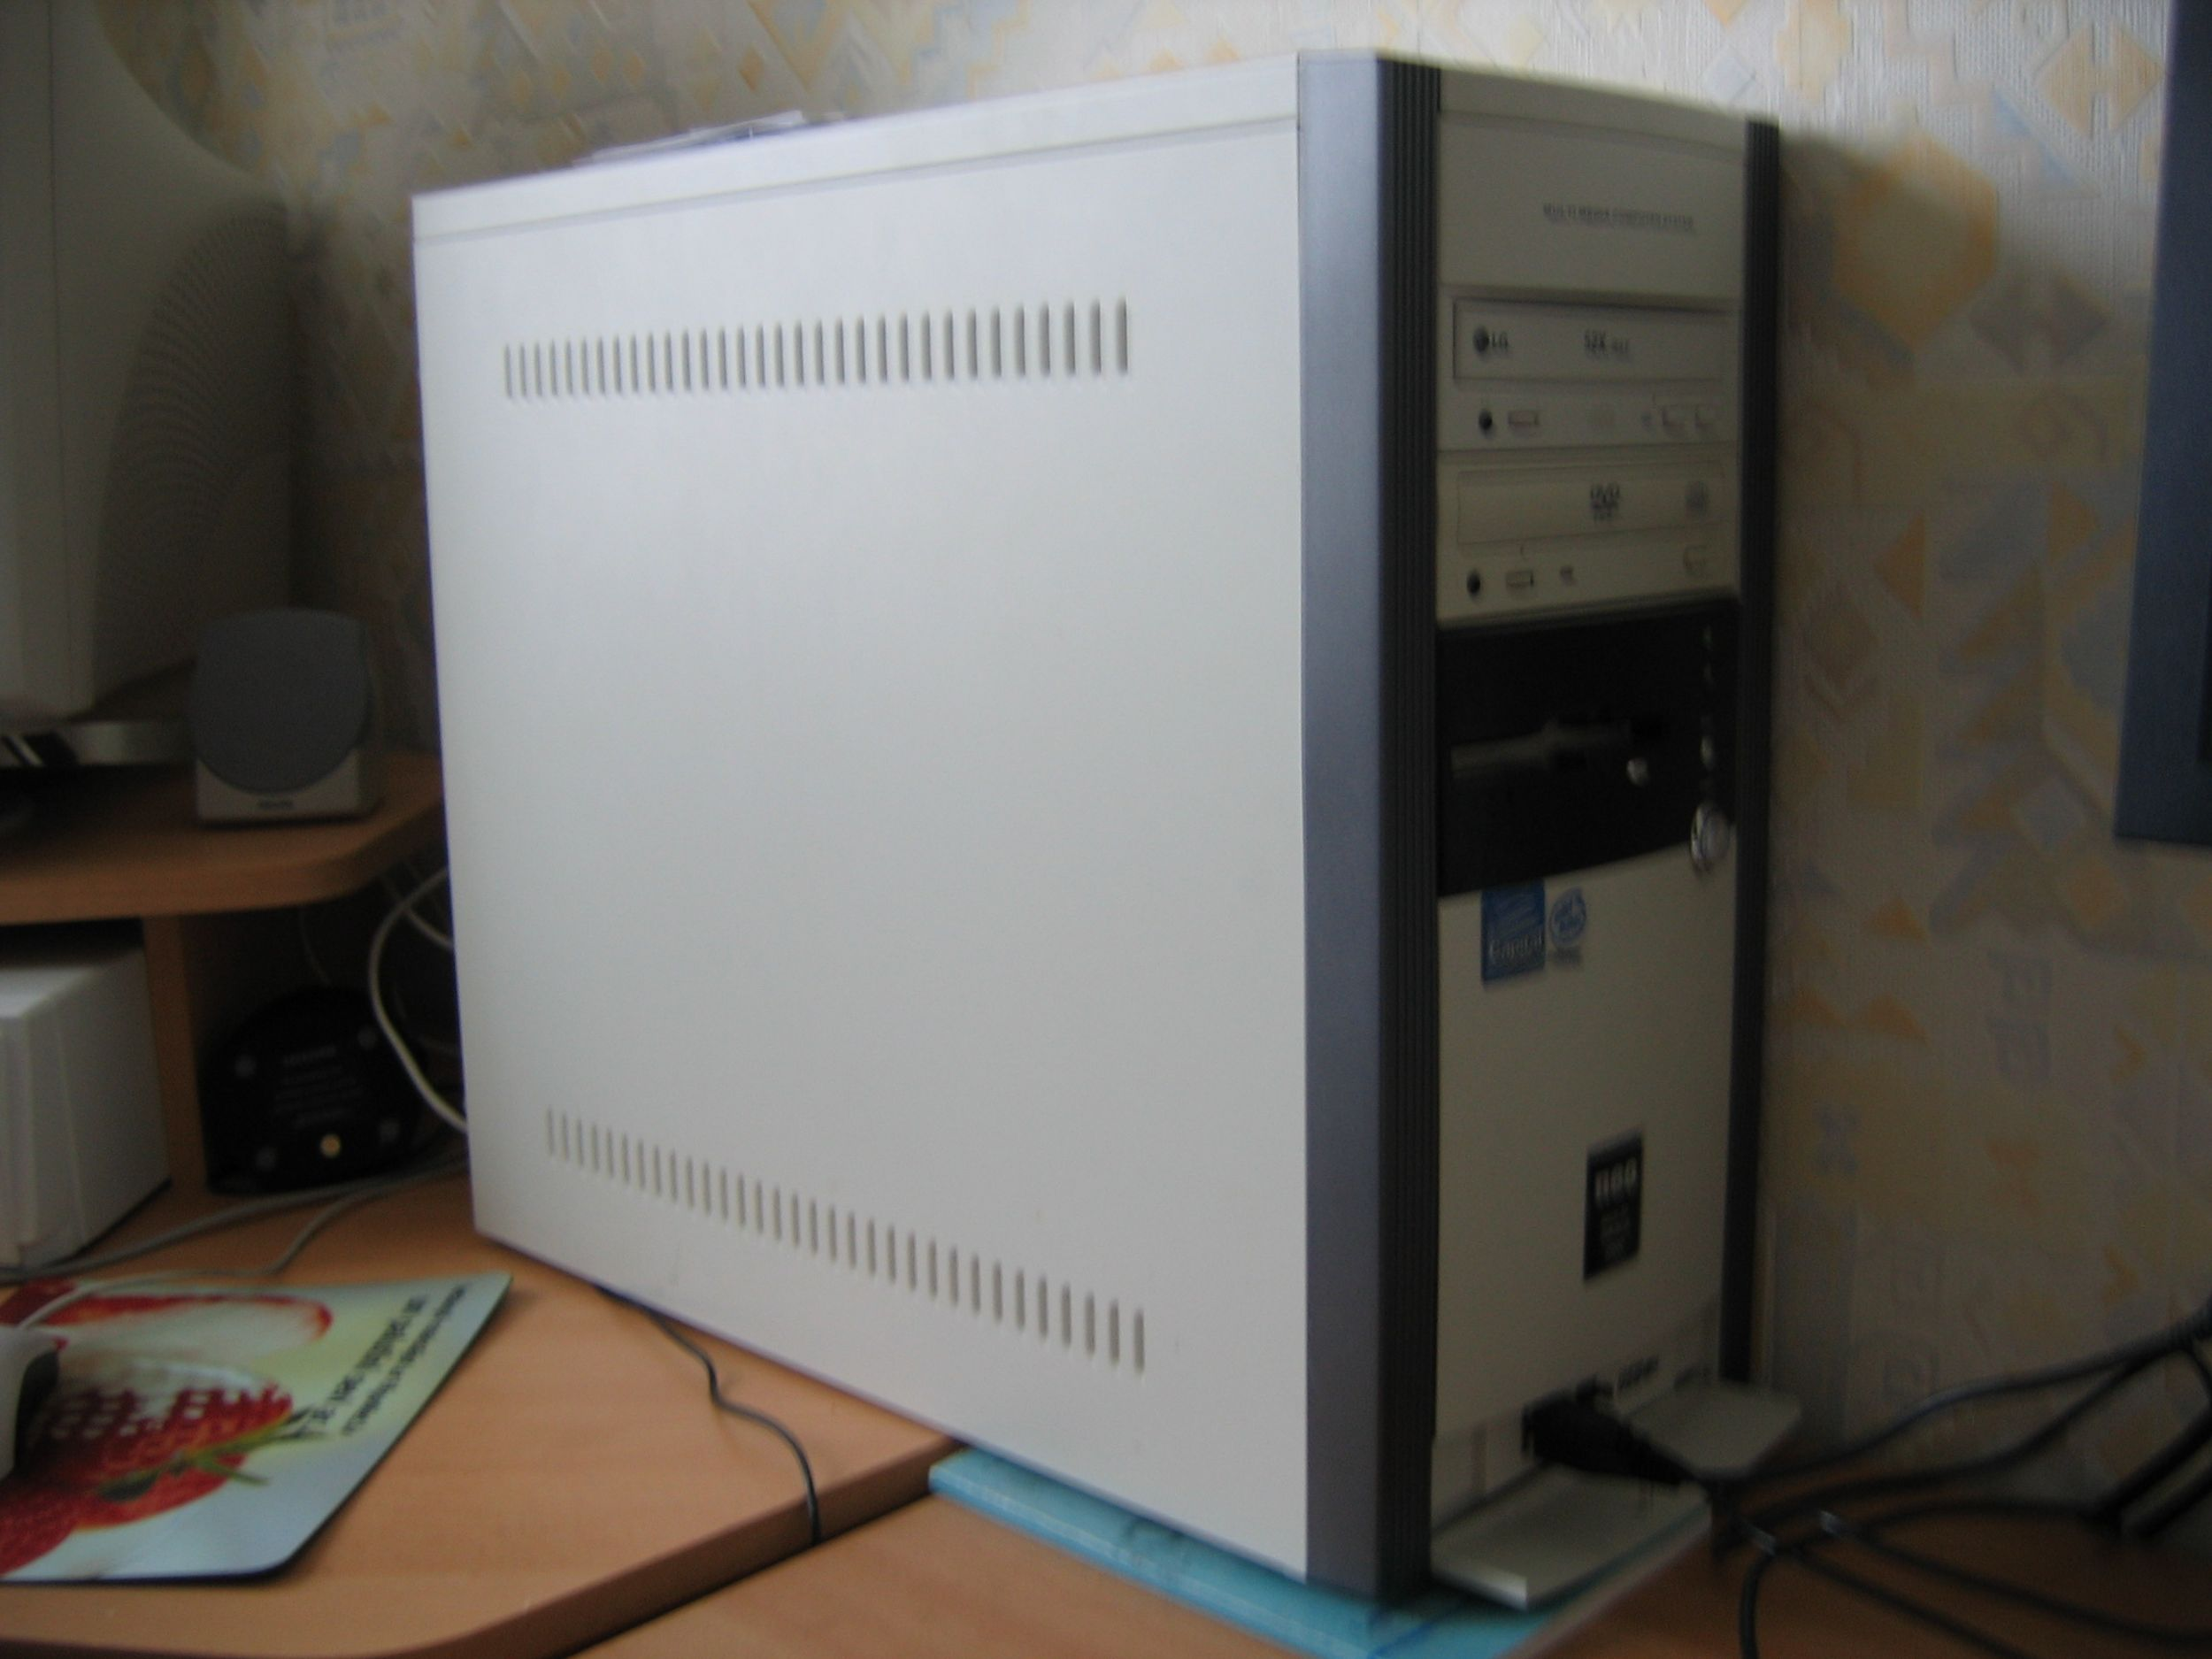 This is my slow PC... Soon to be replaced by a Pentium D system ]:)